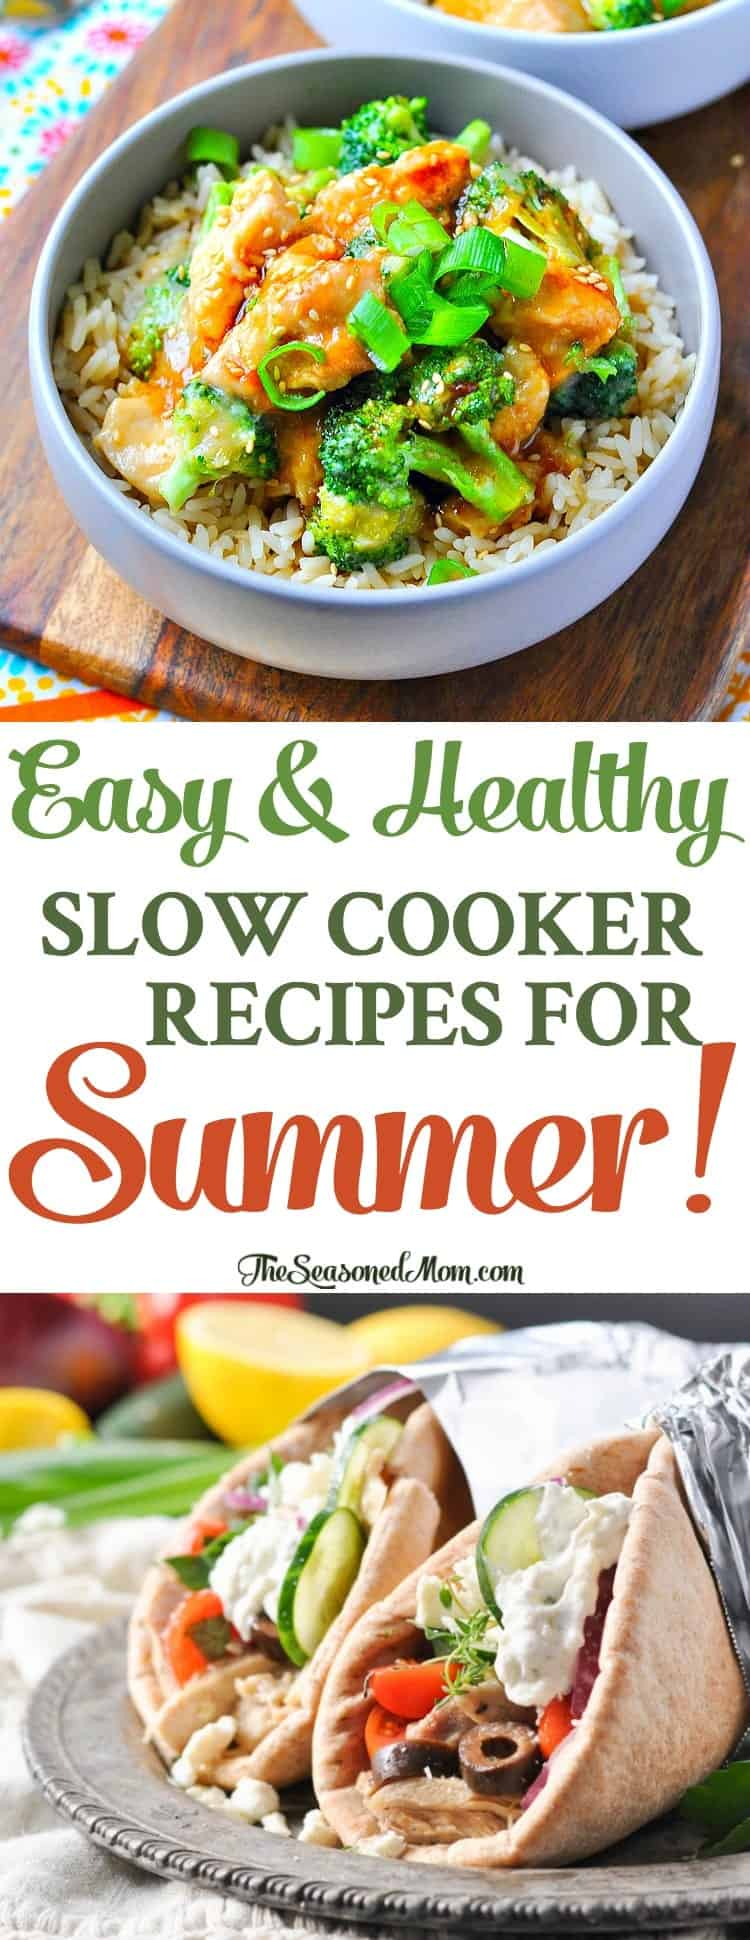 Easy Healthy Slow Cooker Recipes for Summer! - The Seasoned Mom